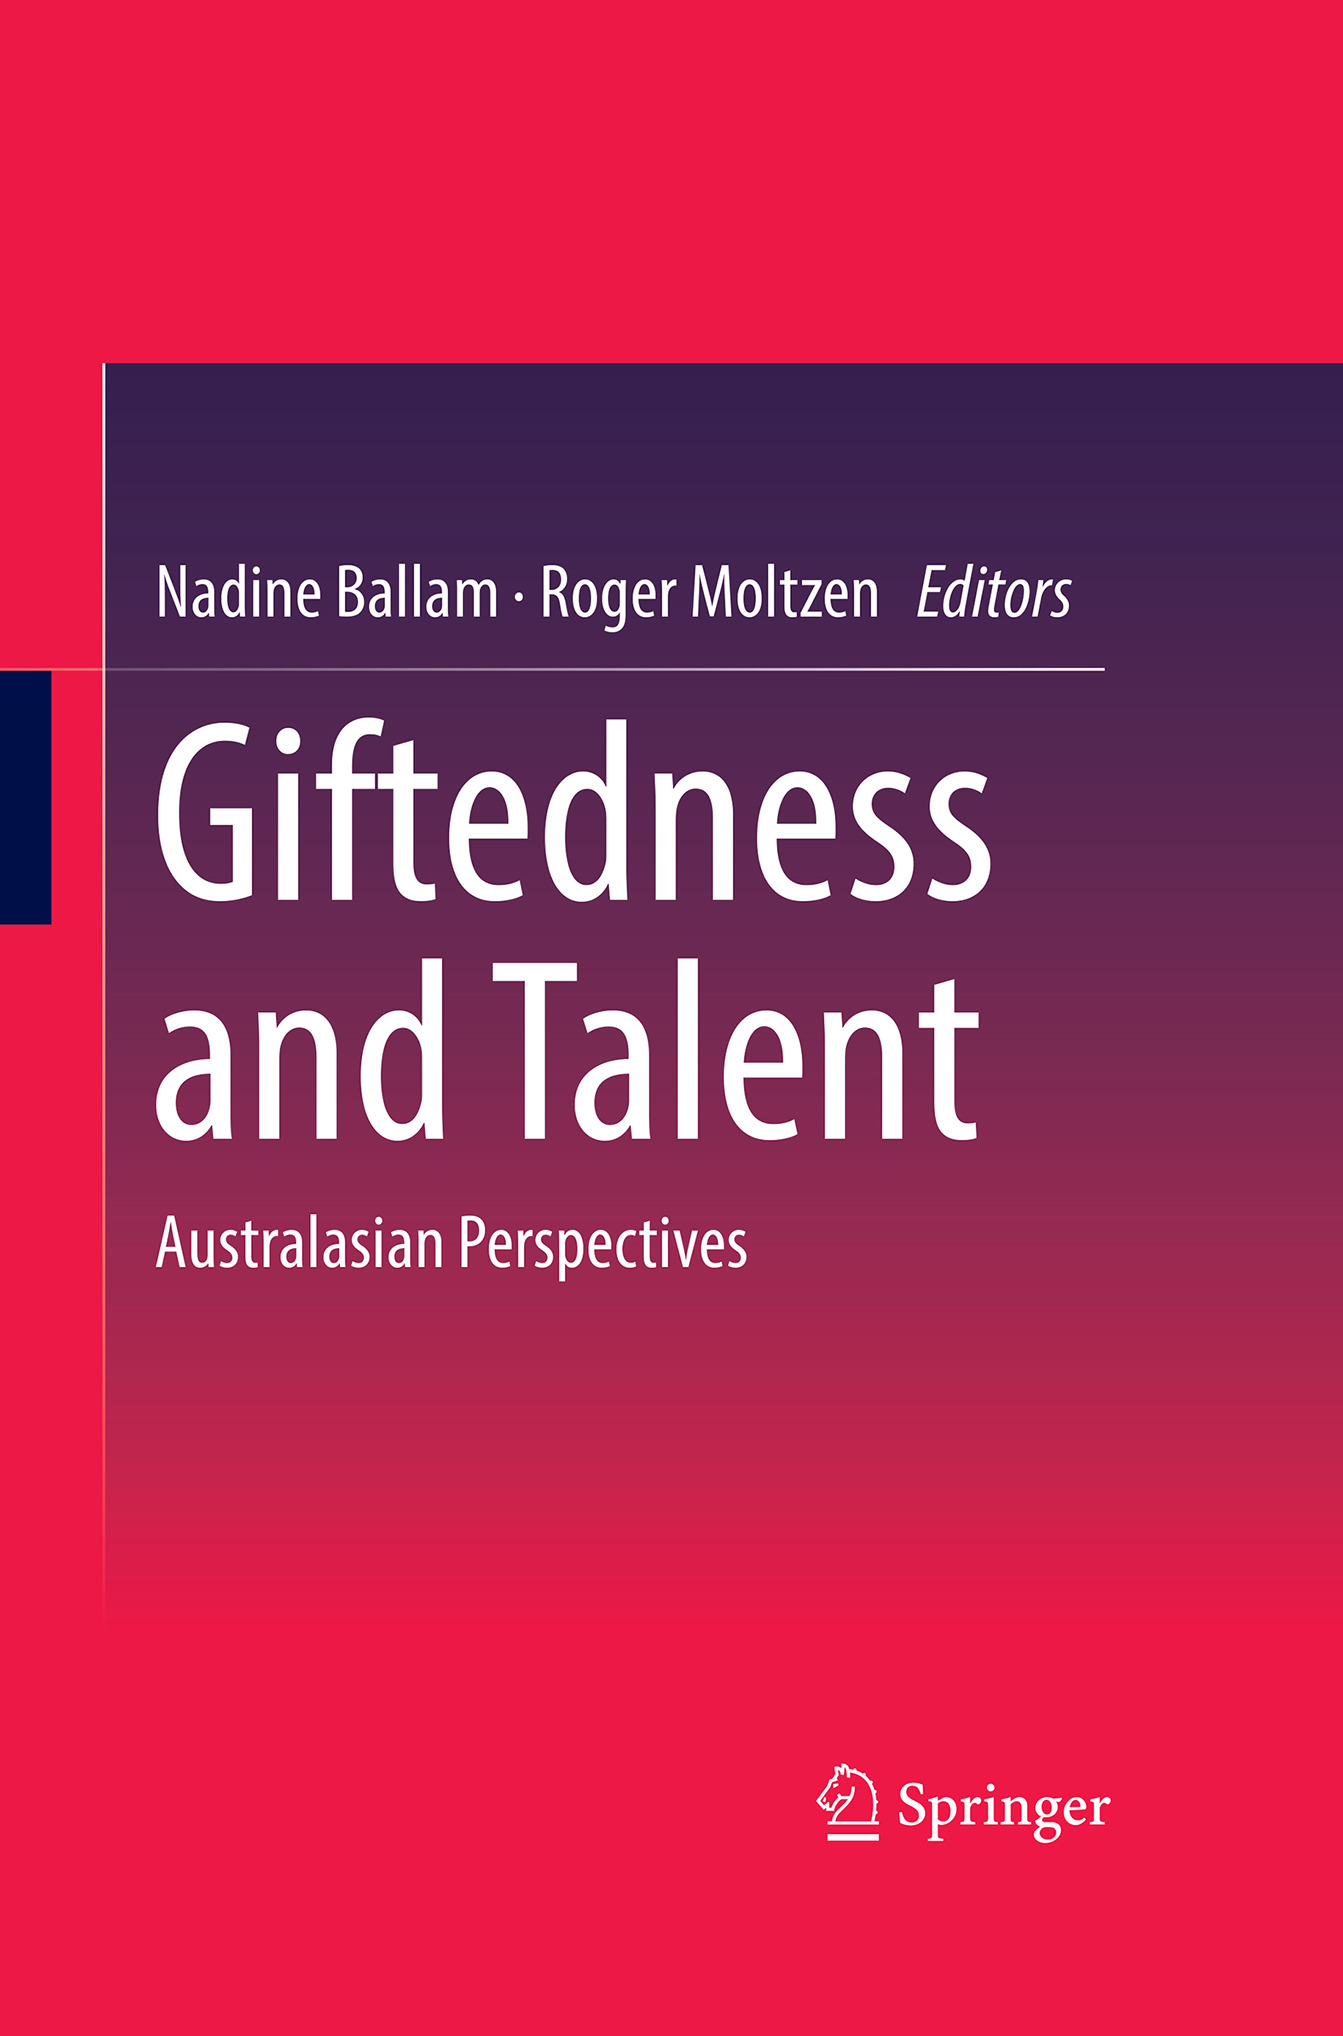 Ballam, Nadine - Giftedness and Talent, ebook